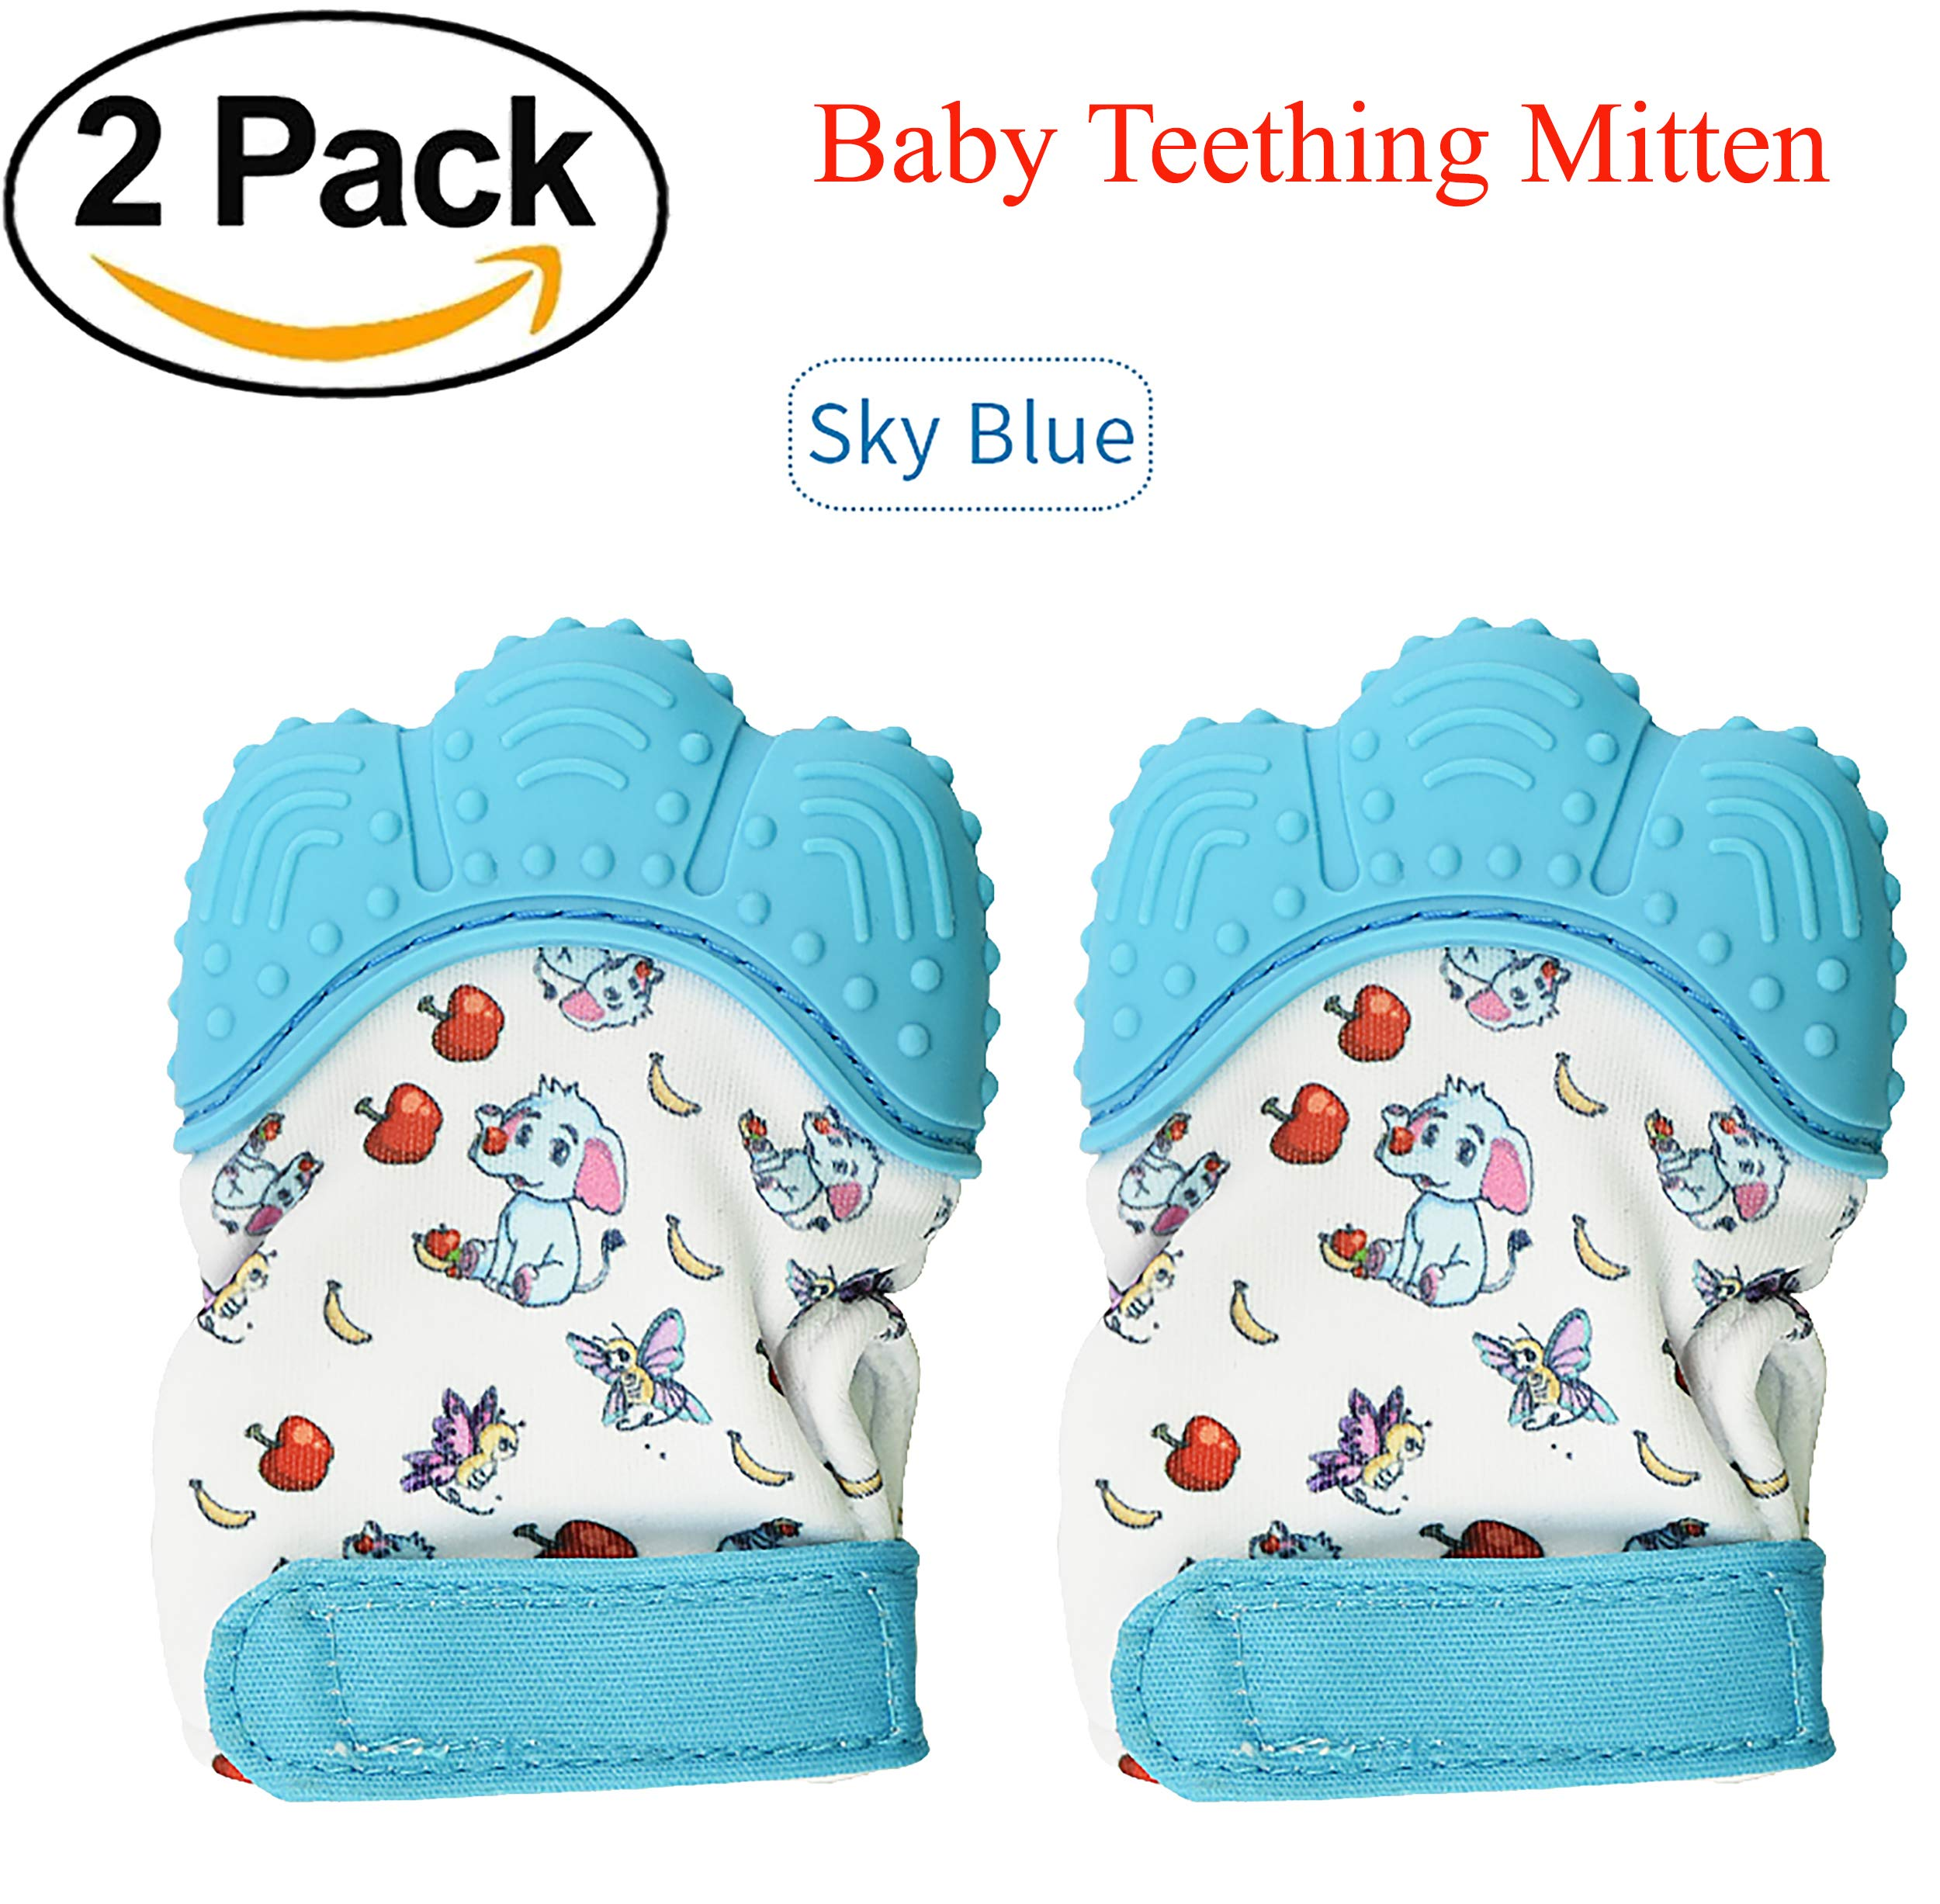 O'zone Baby Teething Mittens - Teething Mitten Provides Soothing Pain Relief Babies, Infants Toddler - Safe BPA-Free Baby Teething - Effective Anti-Scratch 3 to 12 Month Old Baby (Blue) by O'zone (Image #6)